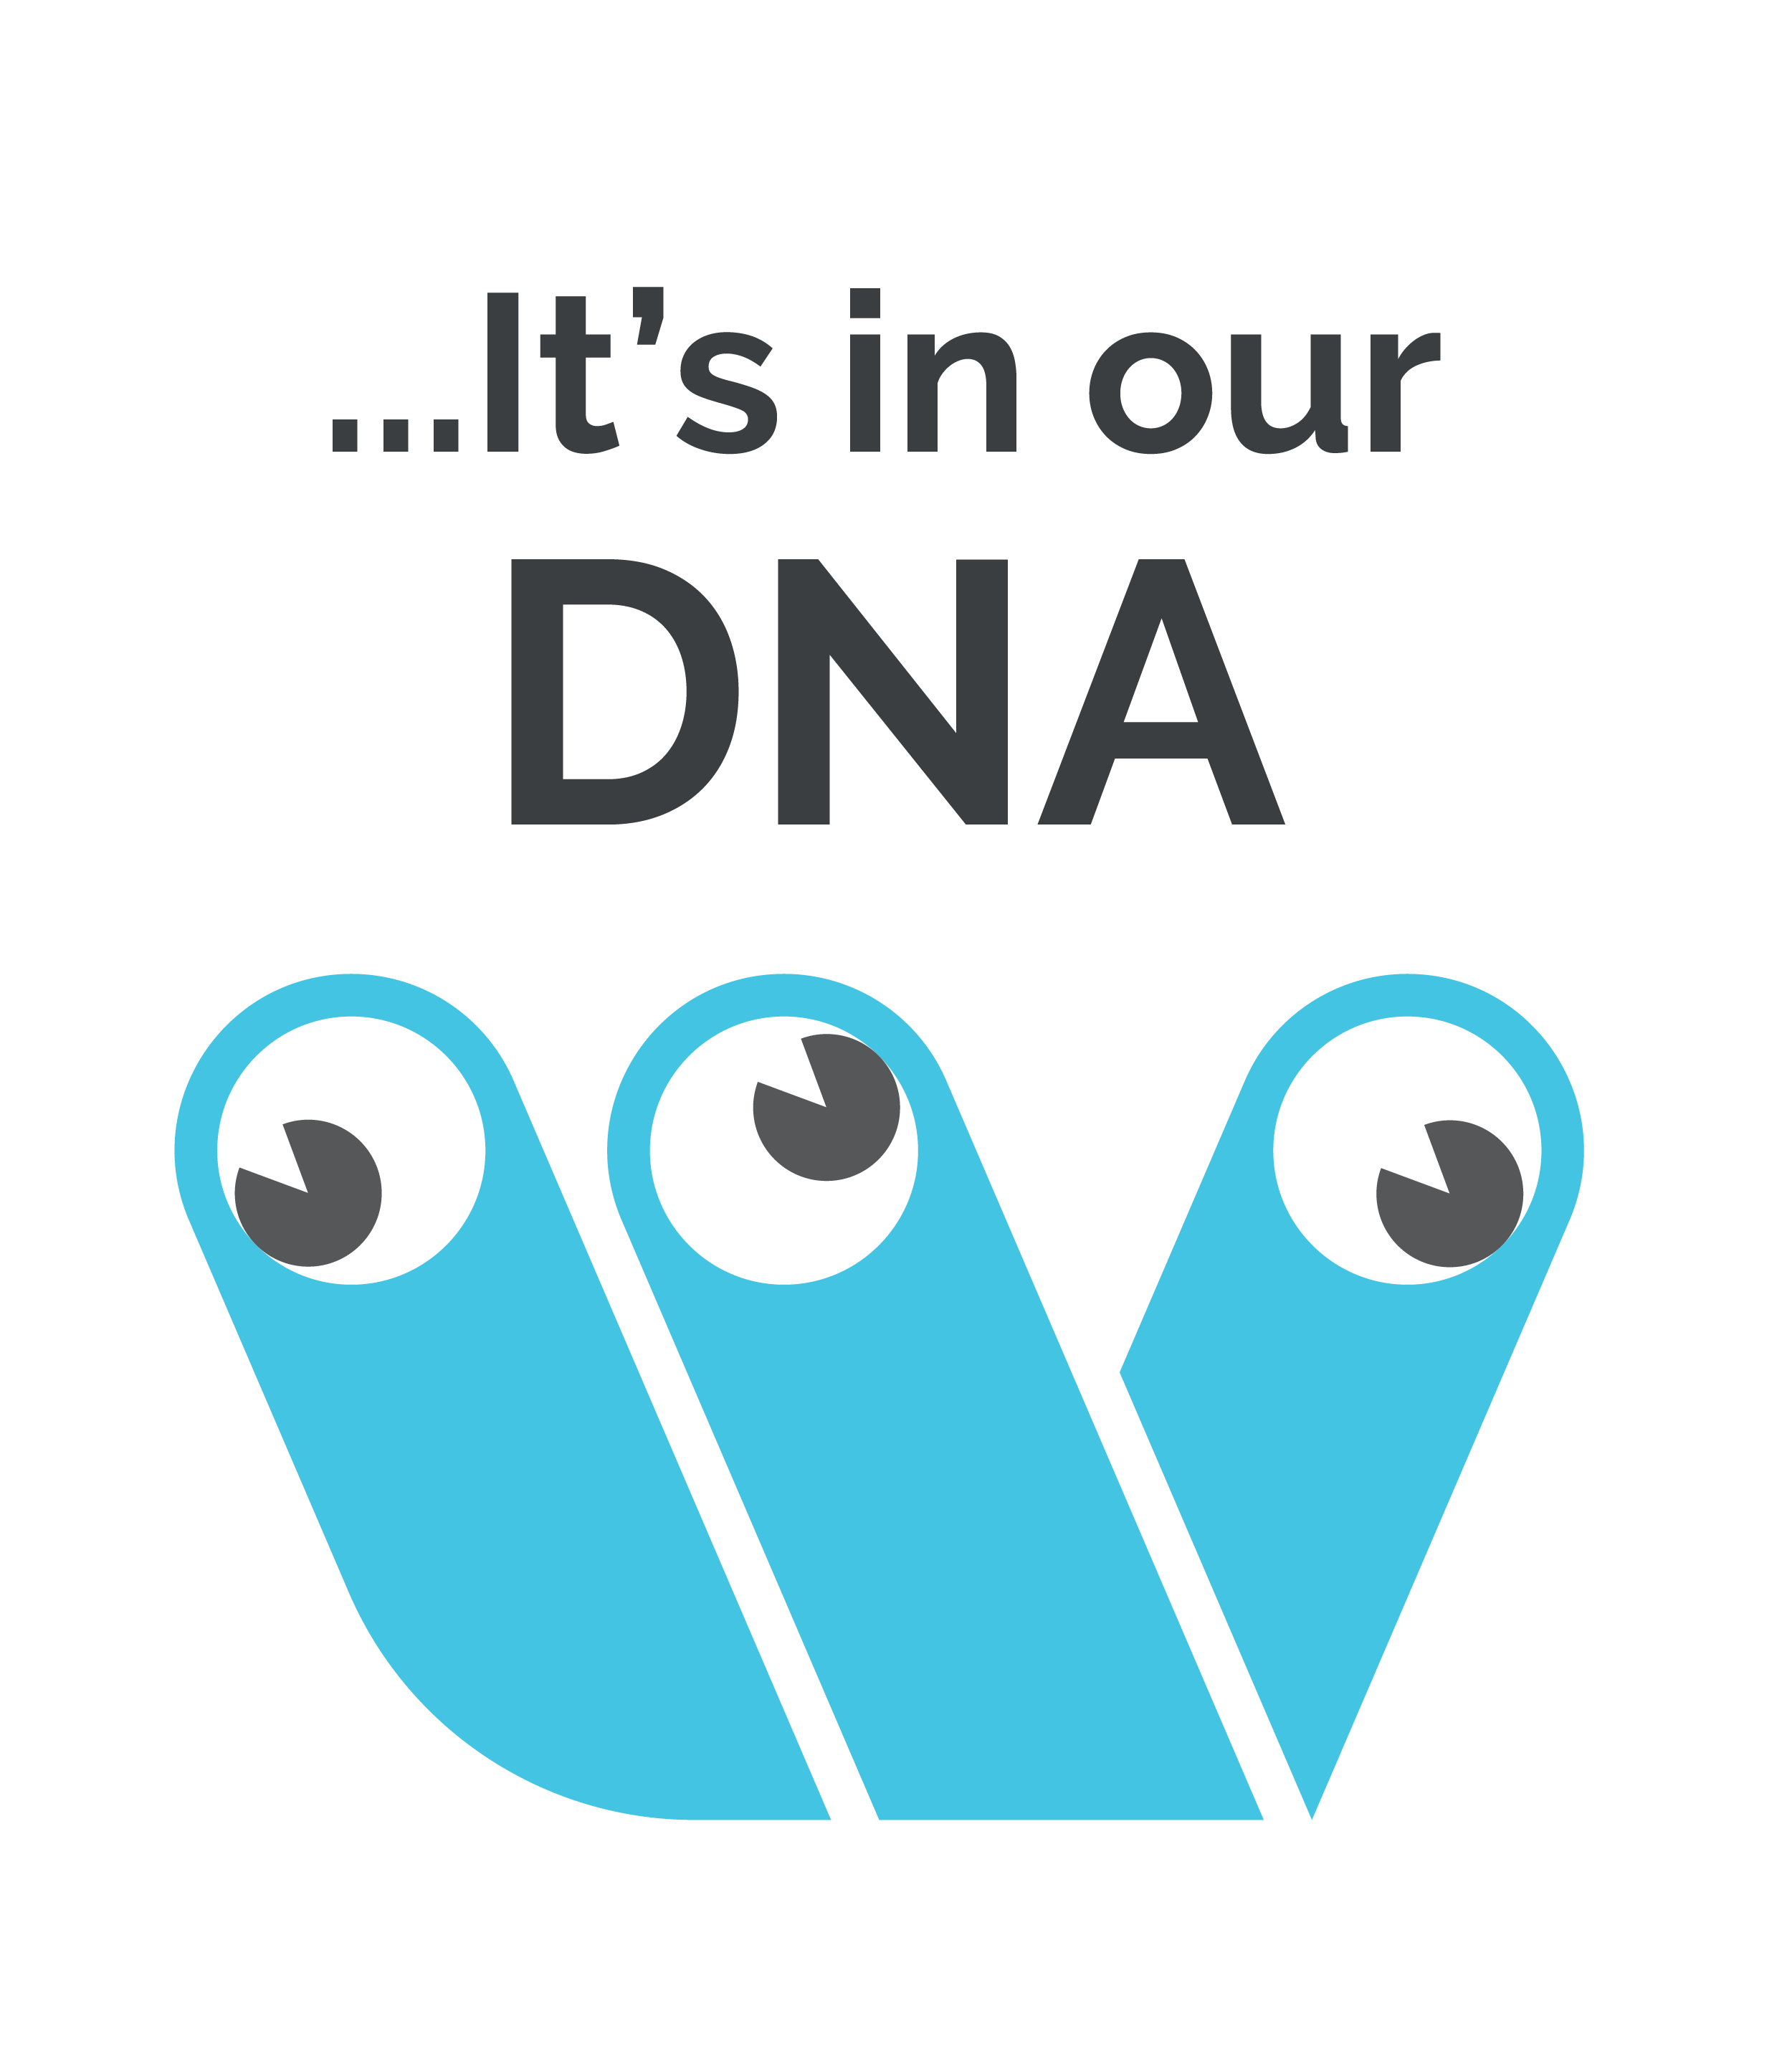 Wildbrain logo with a text right above it that says It's in our DNA.